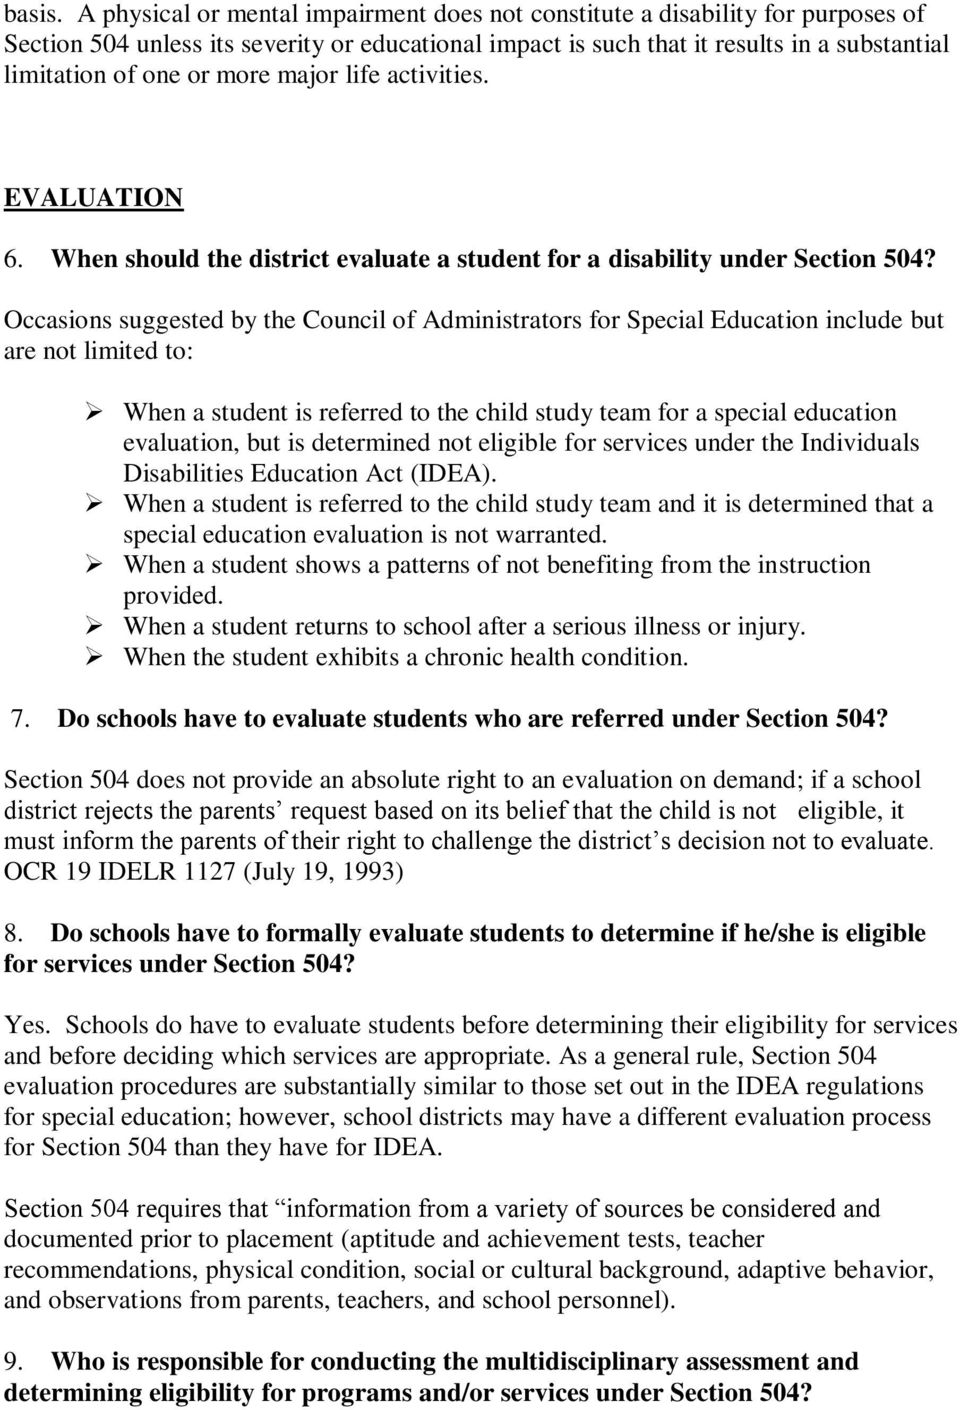 more major life activities. EVALUATION 6. When should the district evaluate a student for a disability under Section 504?